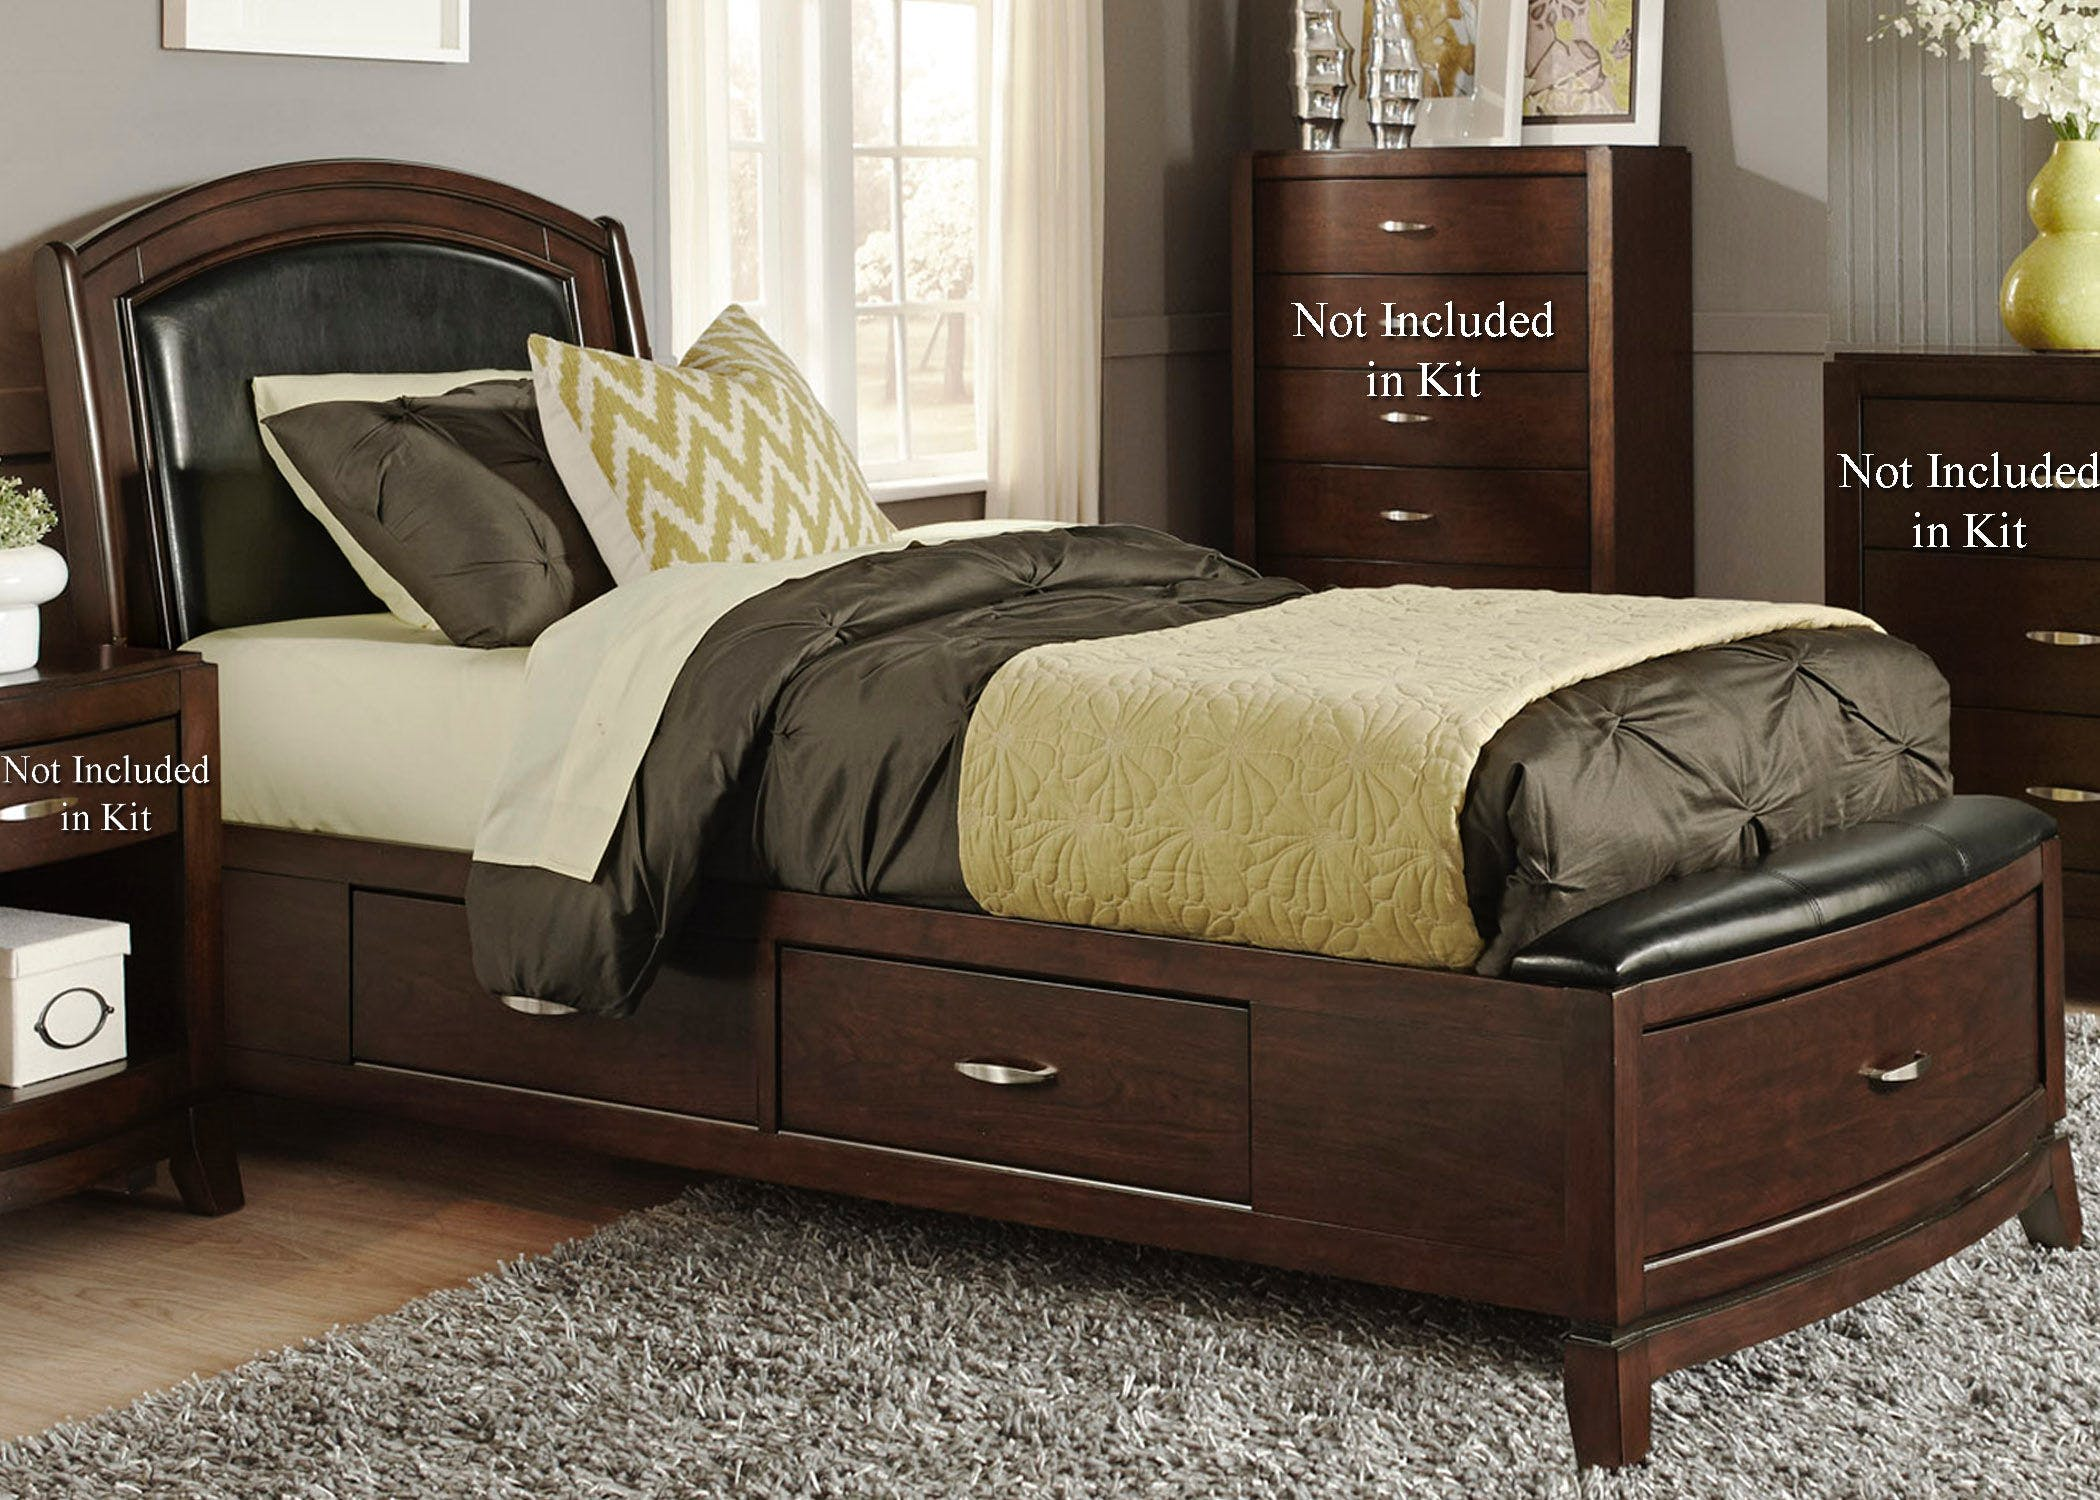 Liberty Furniture Youth Full One Sided Storage Bed Bedroom Set Atmosphere Ideas Sets Dining Logo Catalog Online Beds Nightstands Com Collection Apppie Org